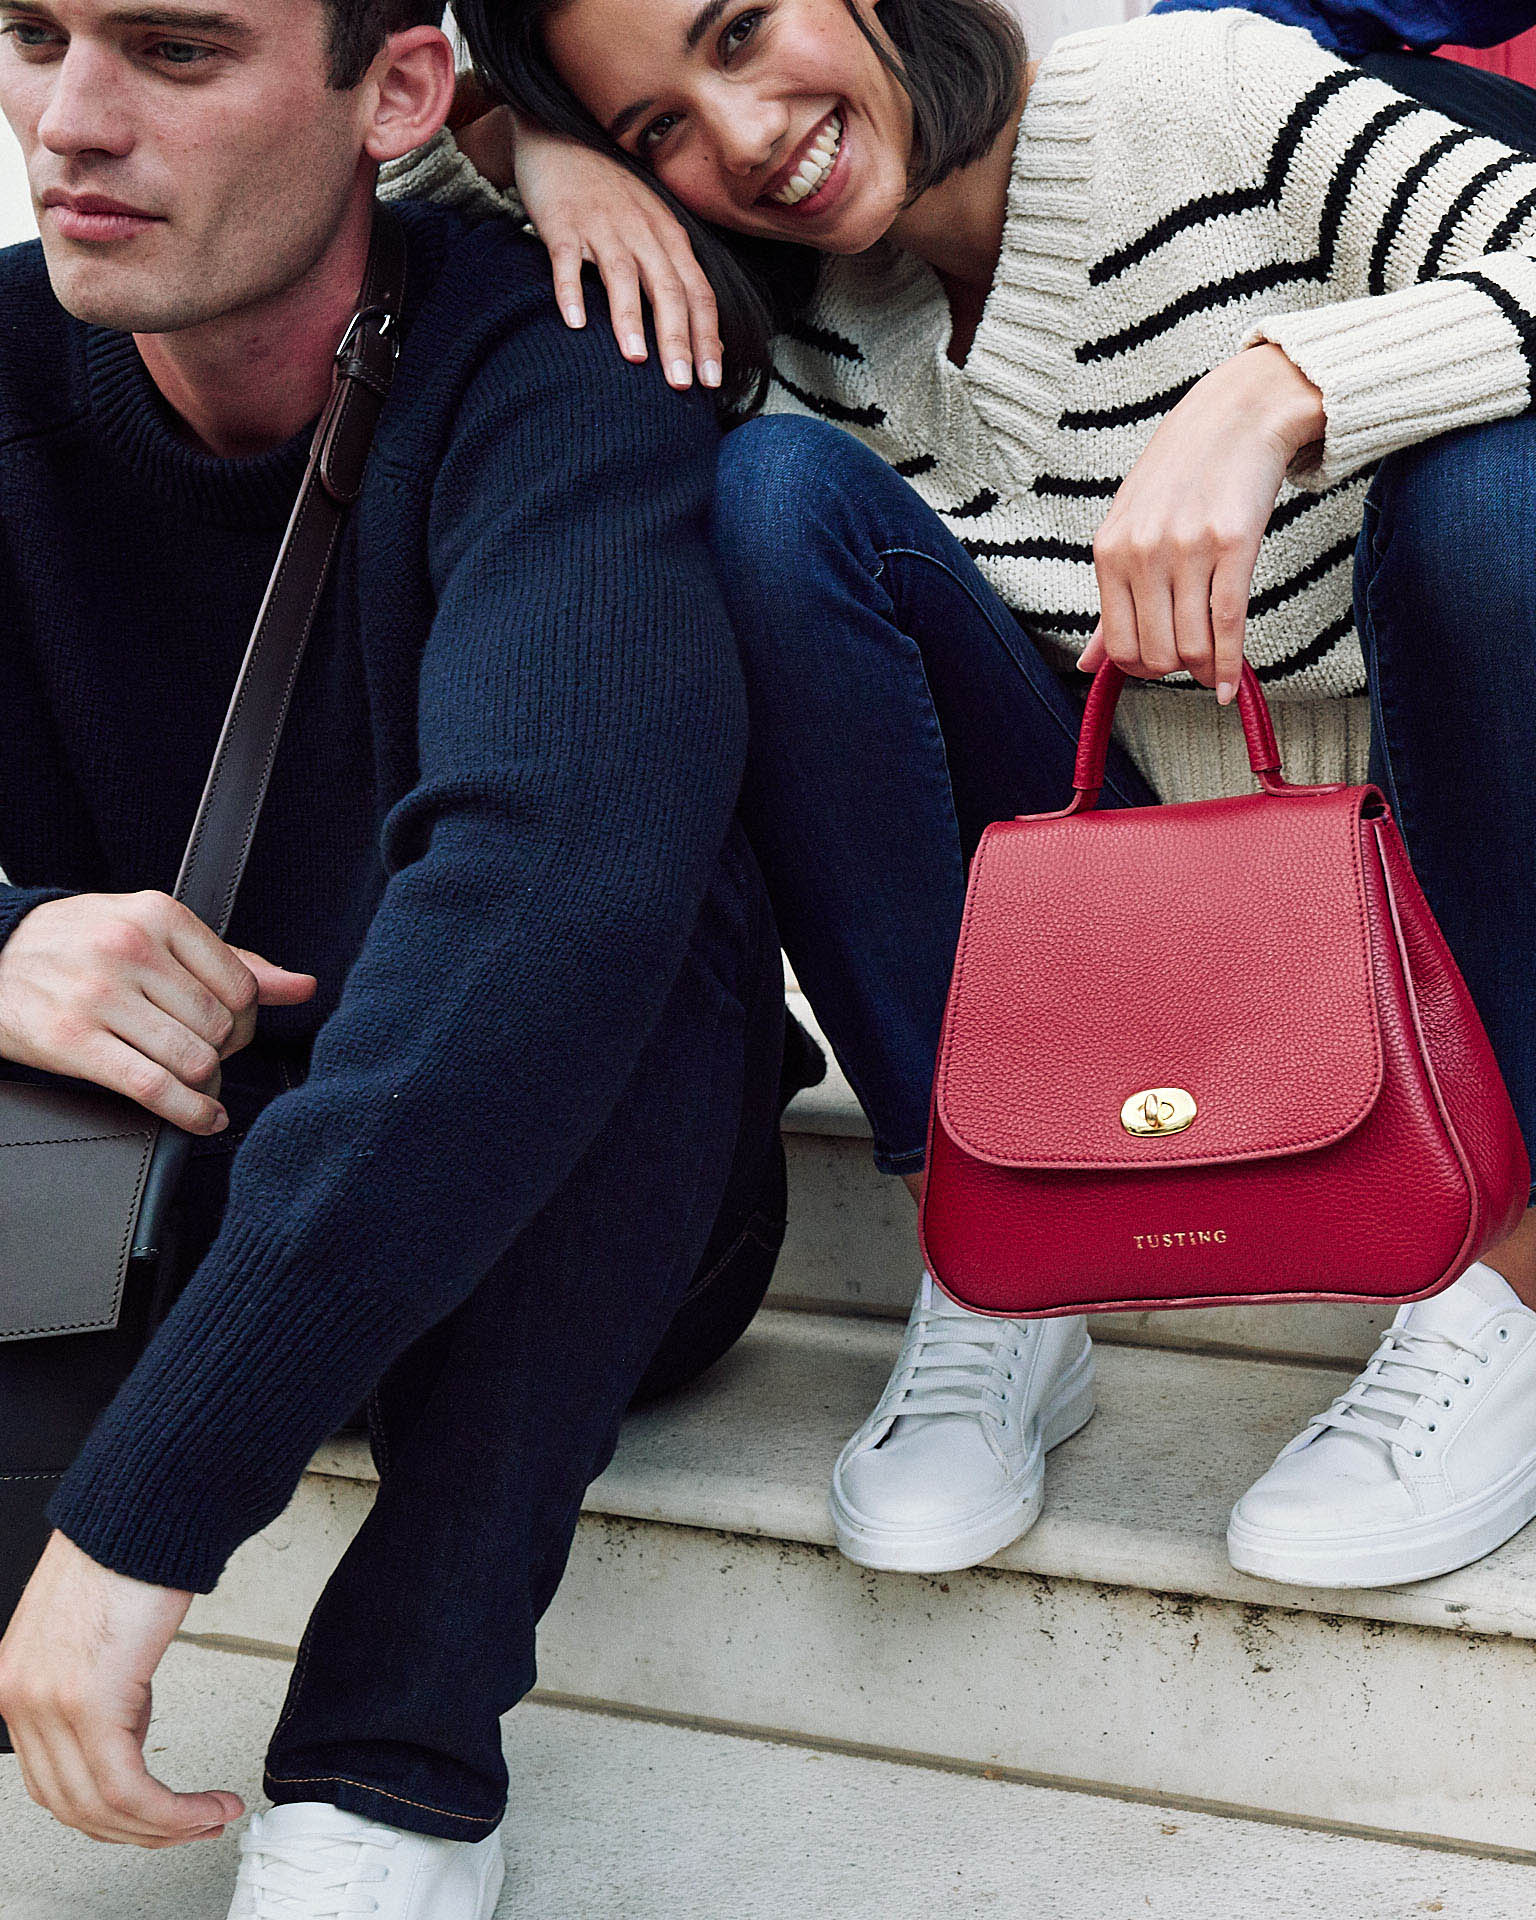 Tusting group,  leather bags, by lifestyle photographer